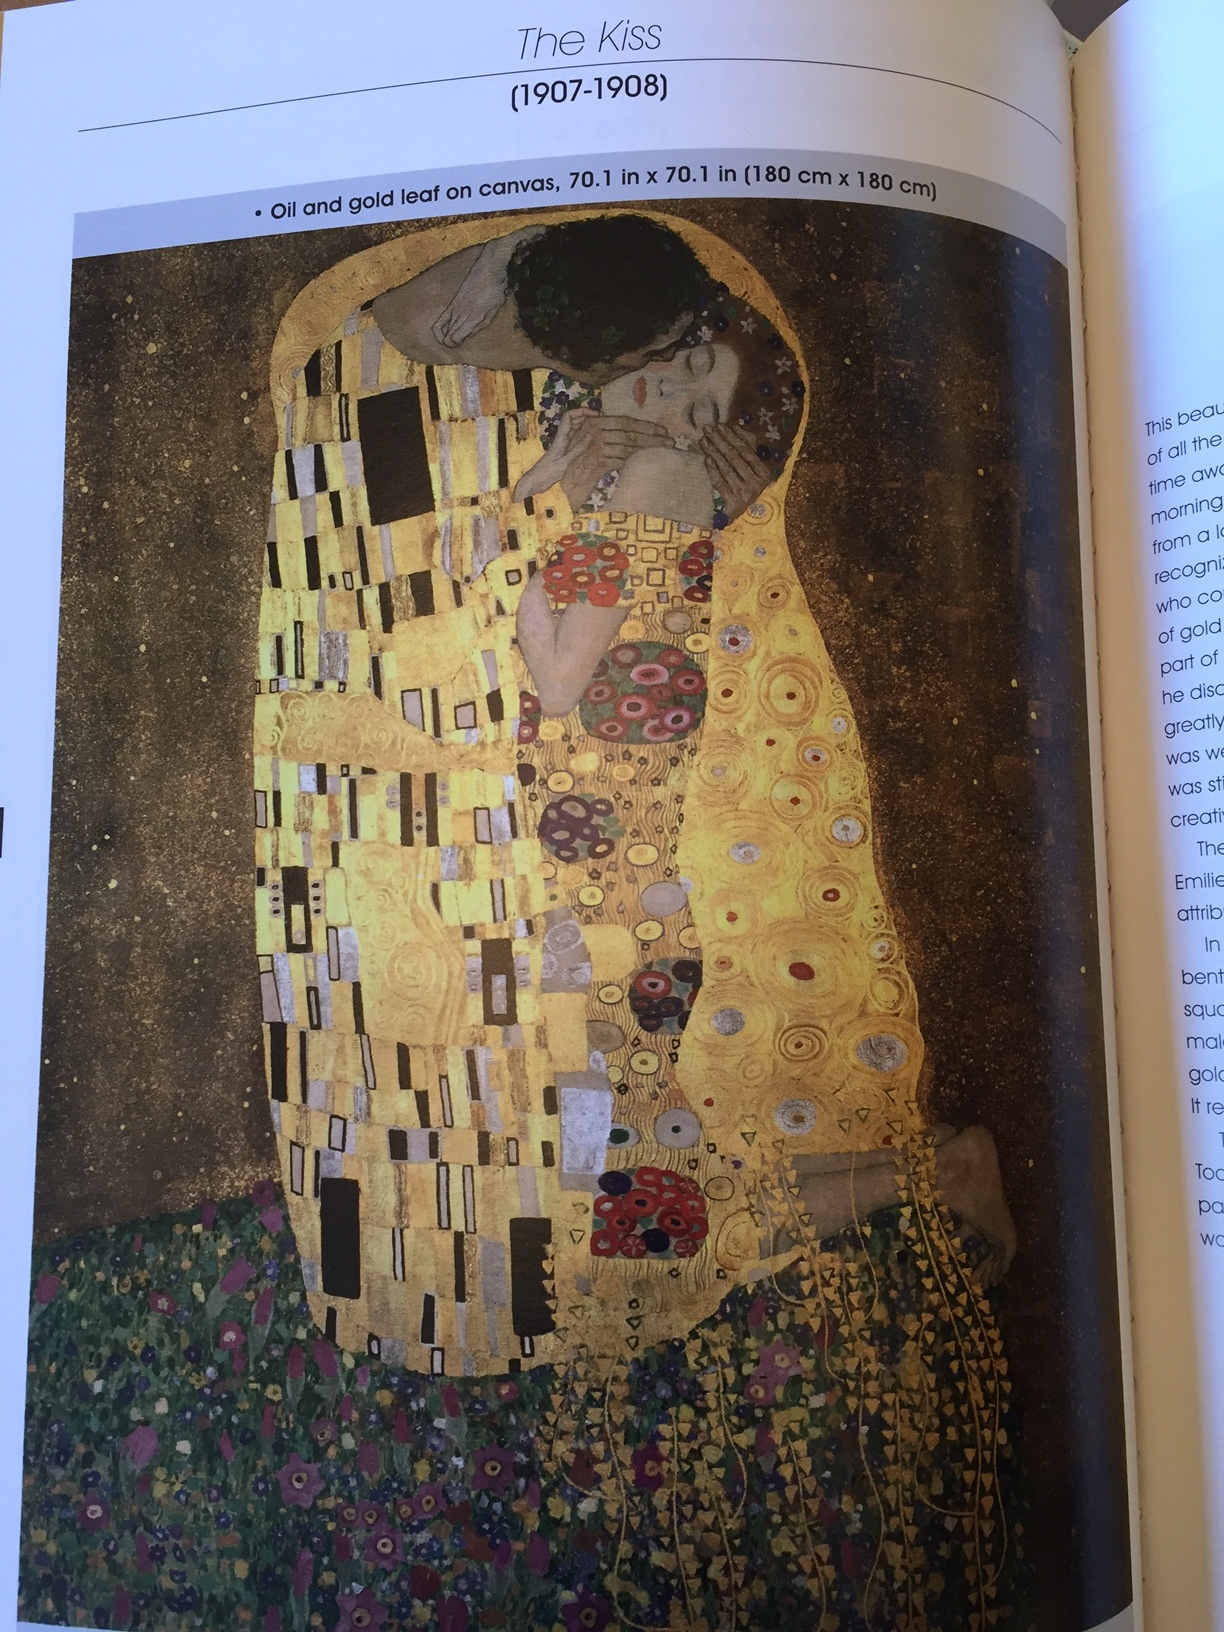 Image from Klimt, The Great Artists Collection.